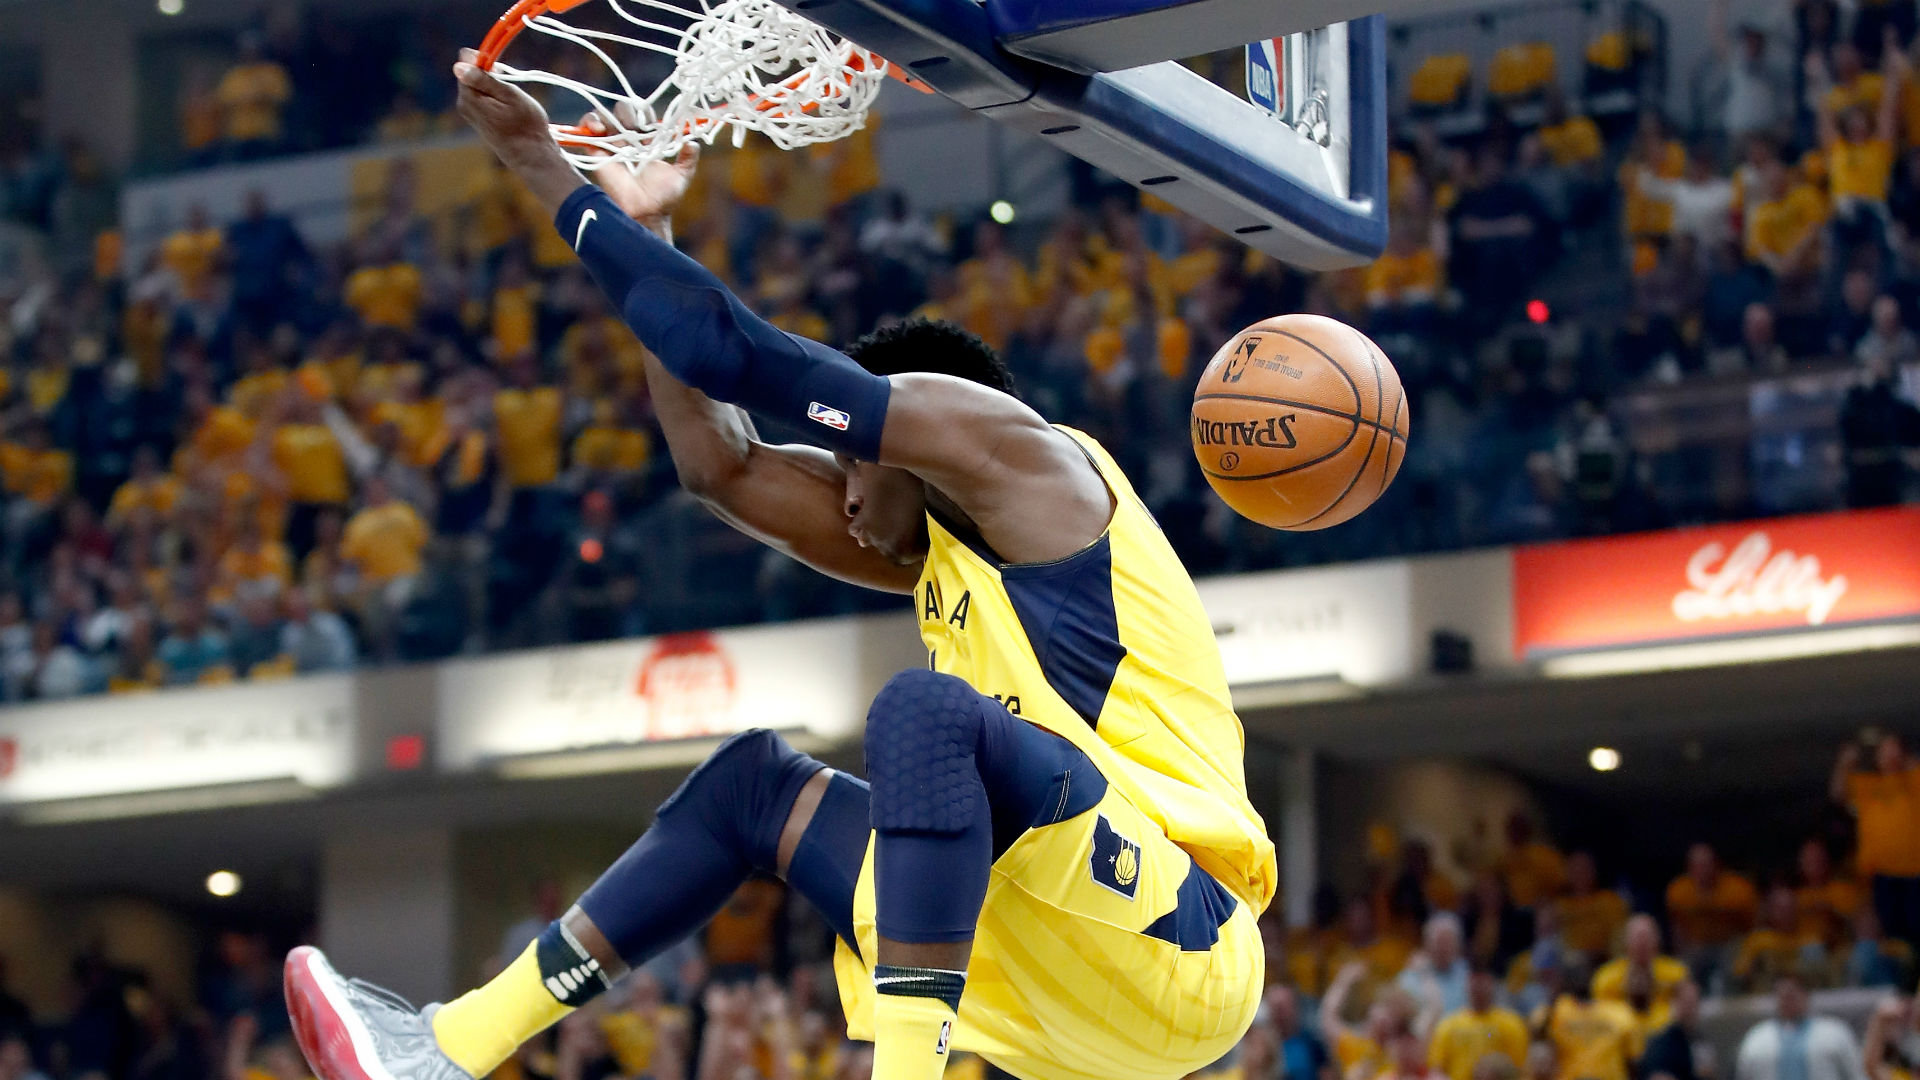 Victor Oladipo insists LeBron James' late block was a goaltend